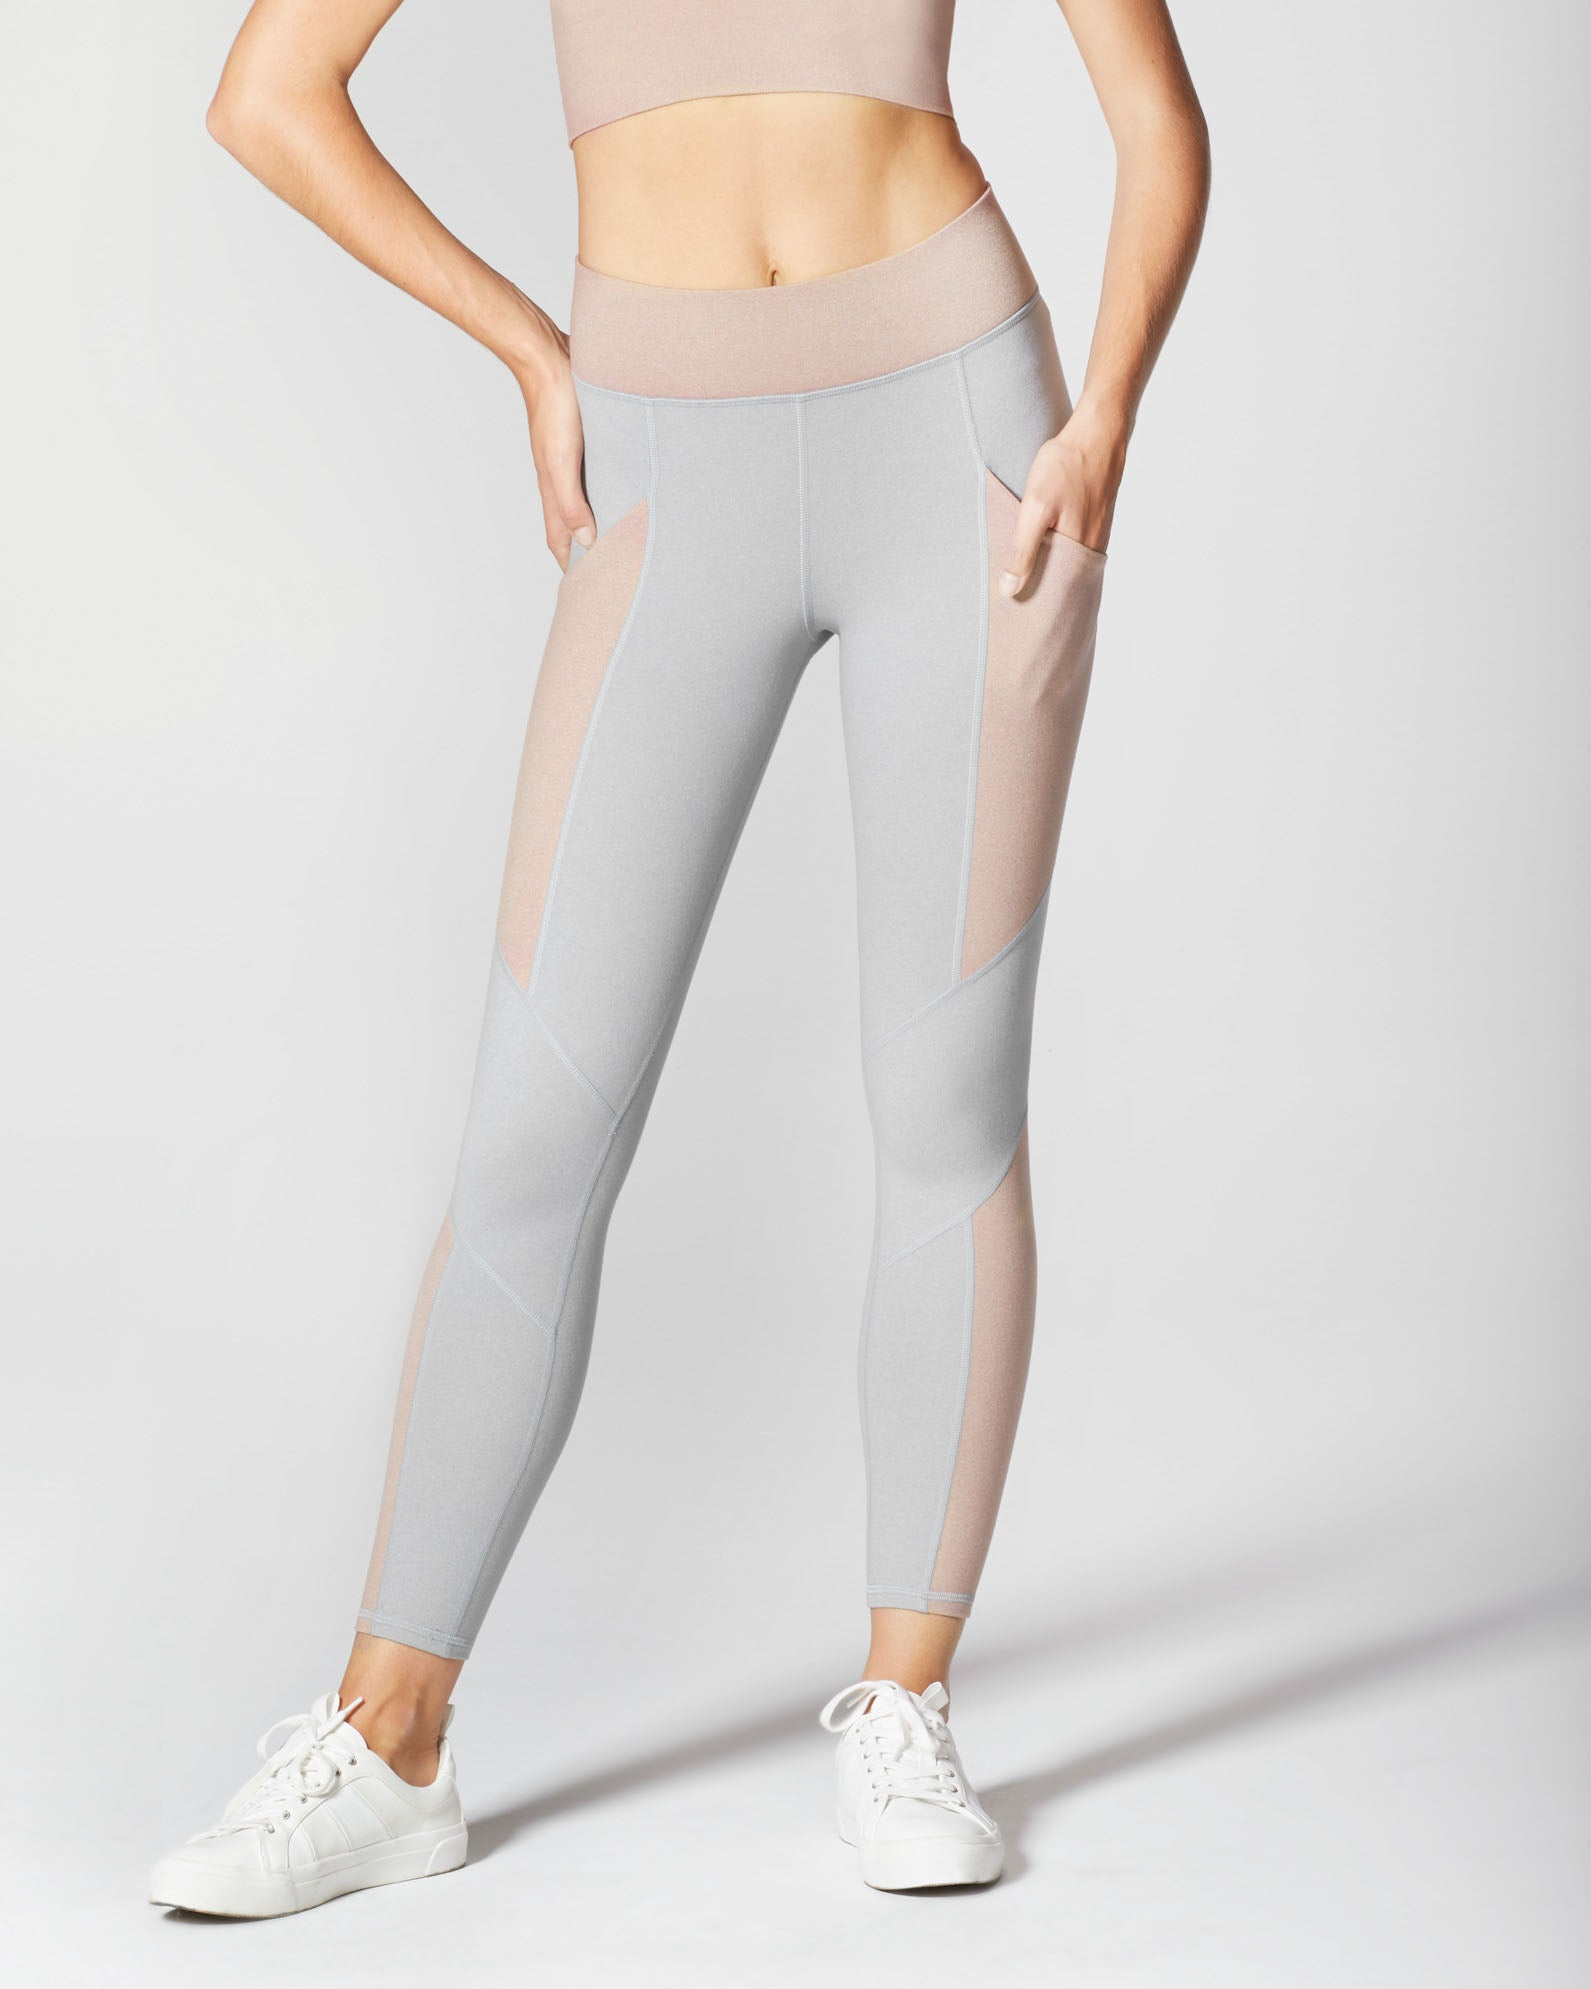 Aura Pocket Legging - Rose Quartz